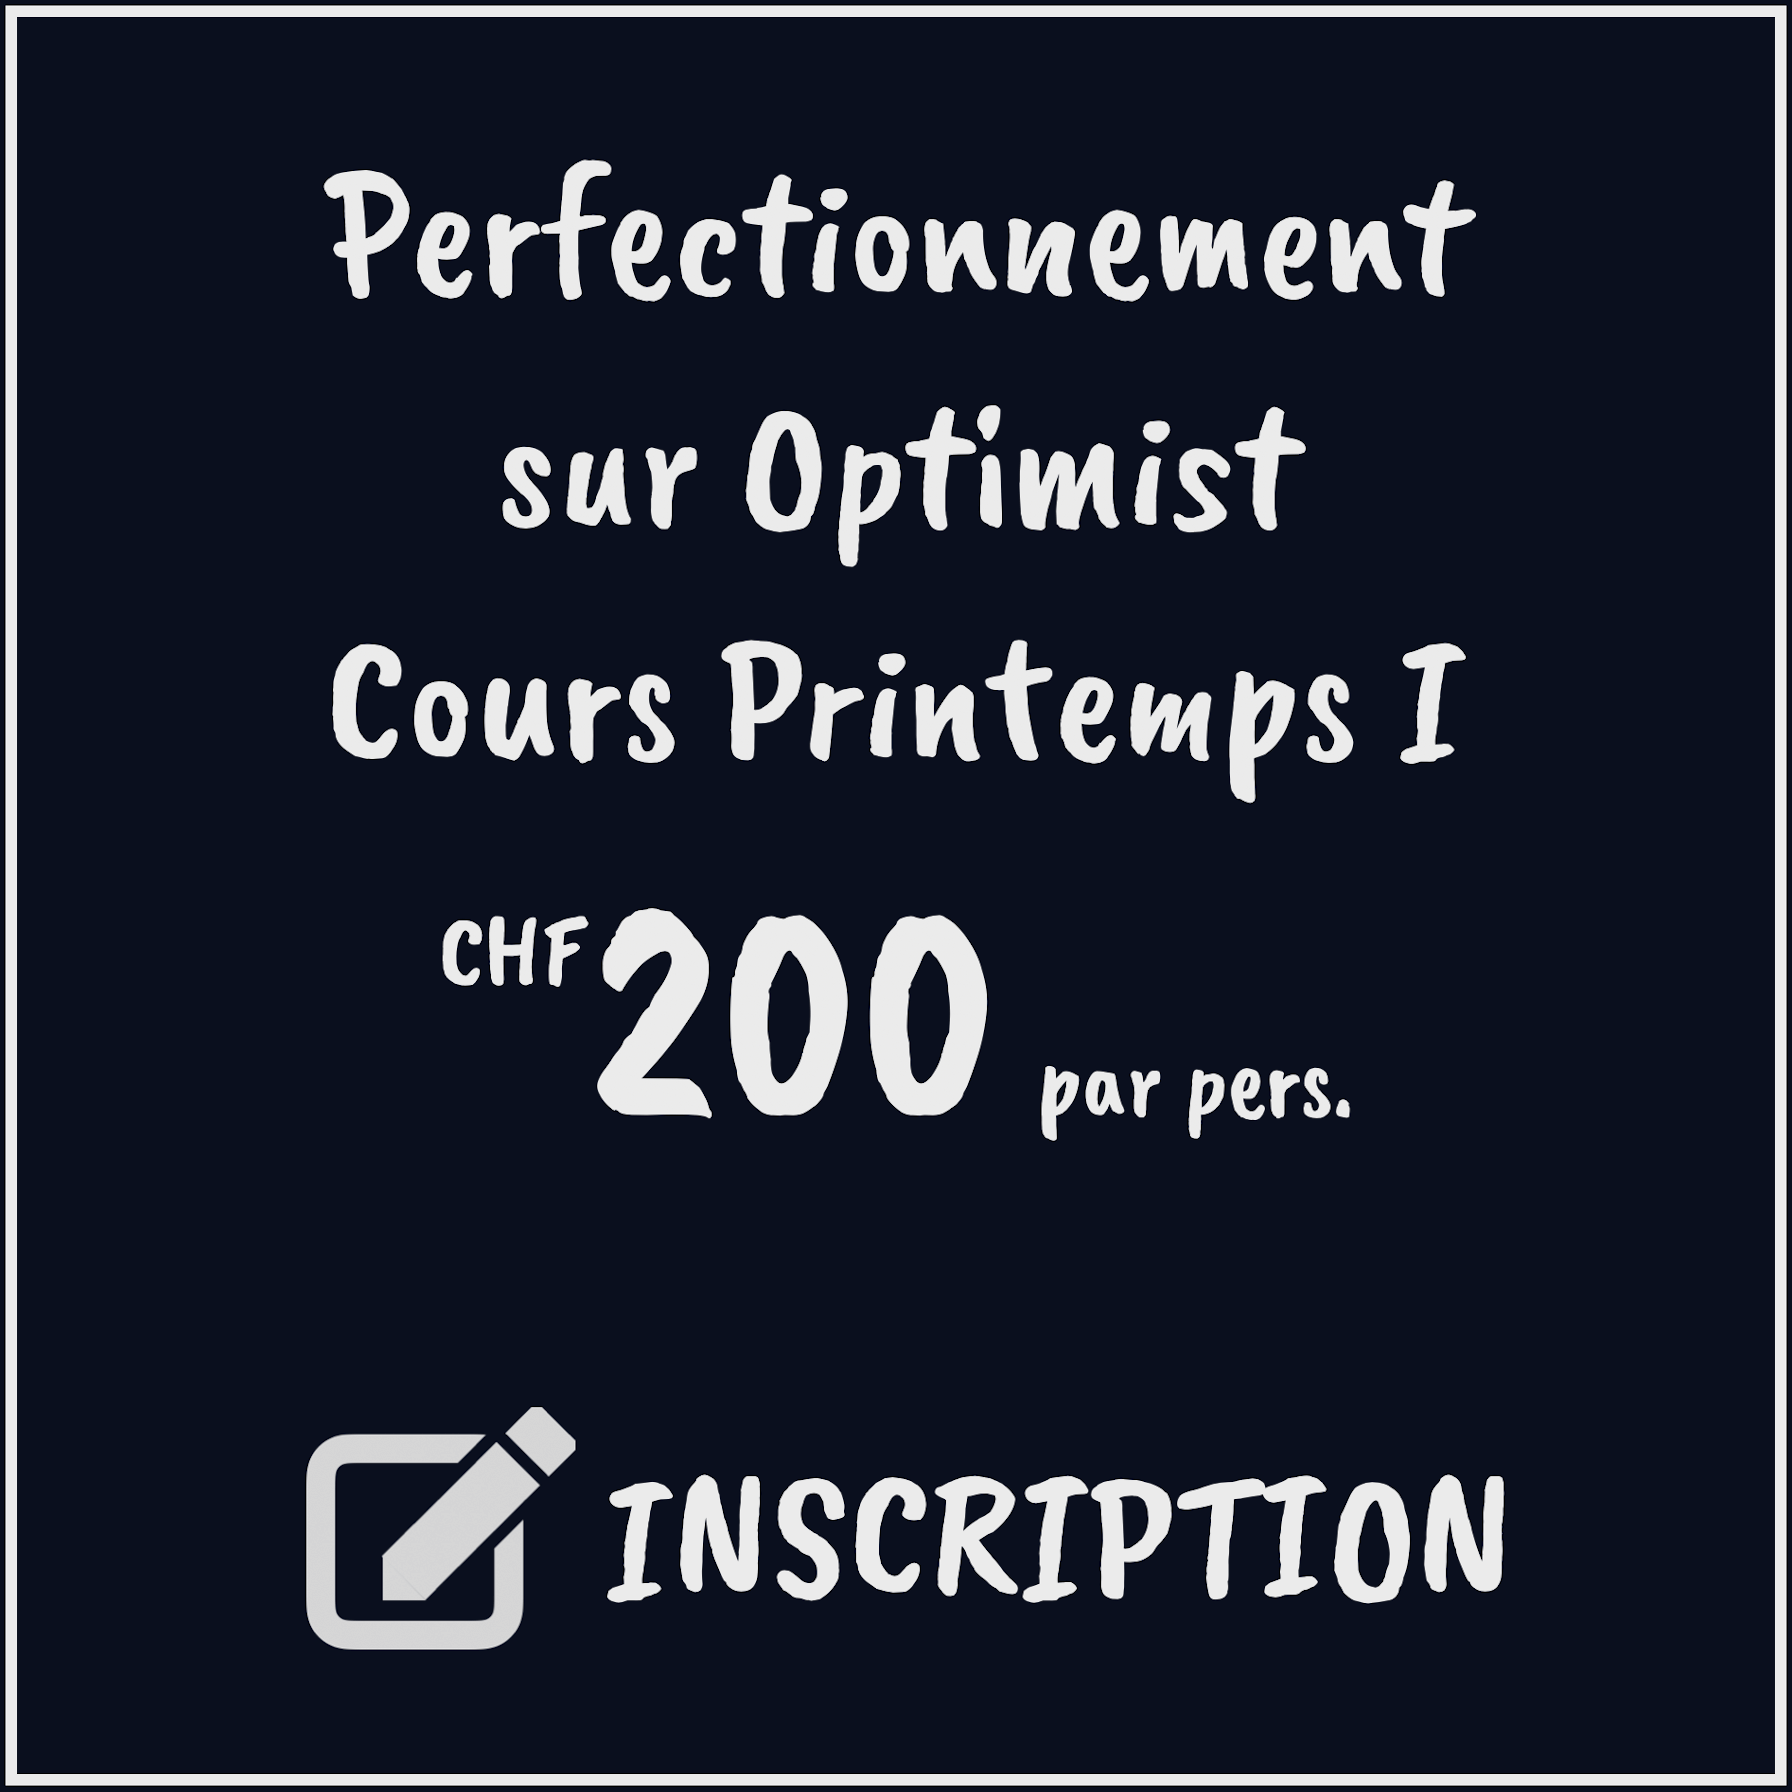 Cours Printemps II Perfectionnement sur Optimist